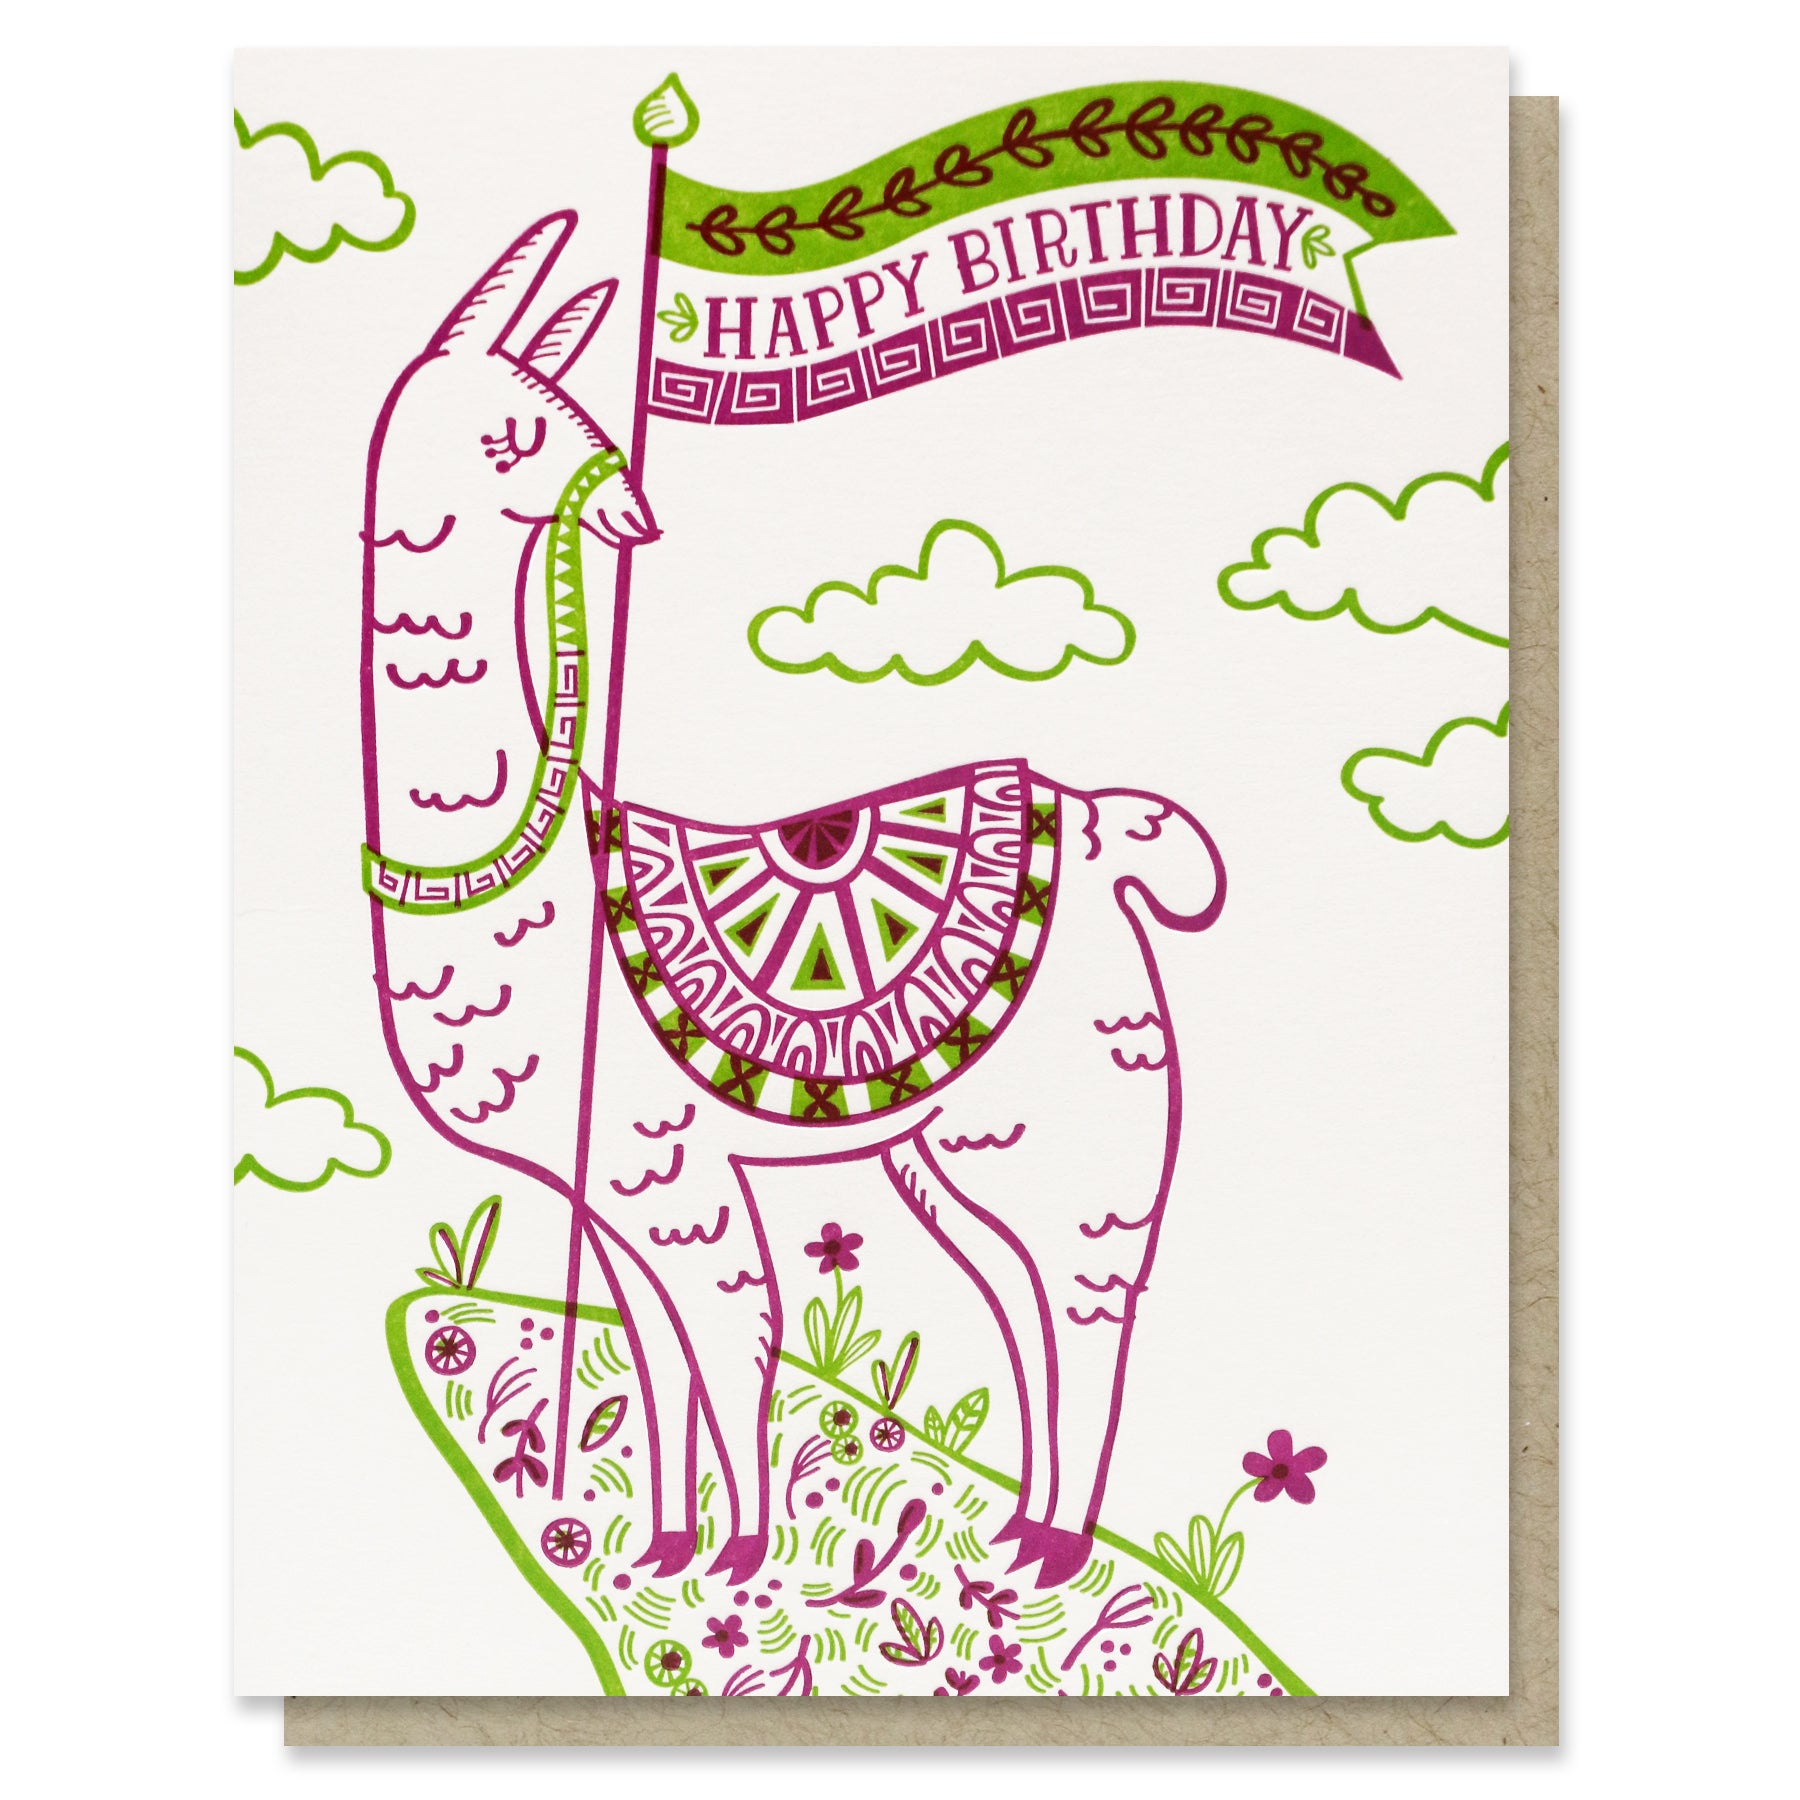 Happy Birthday Llama Card